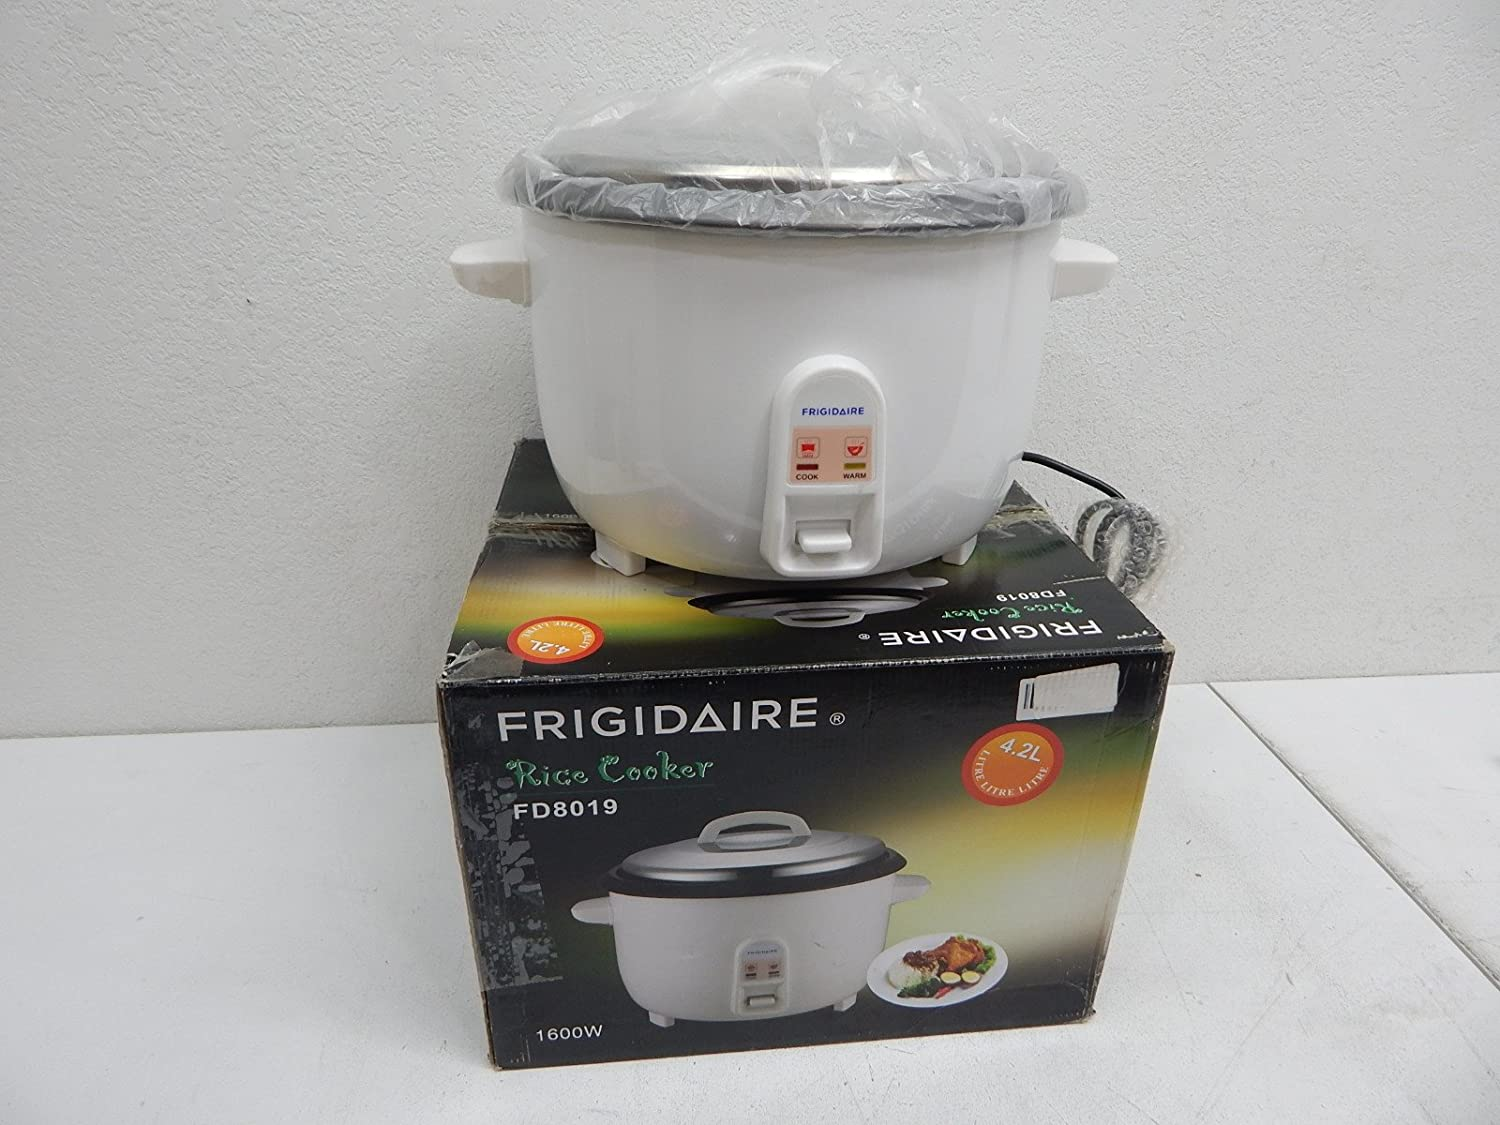 Frigidaire FD8019 4.2-Liter Deluxe Rice Cooker - 220 Volts